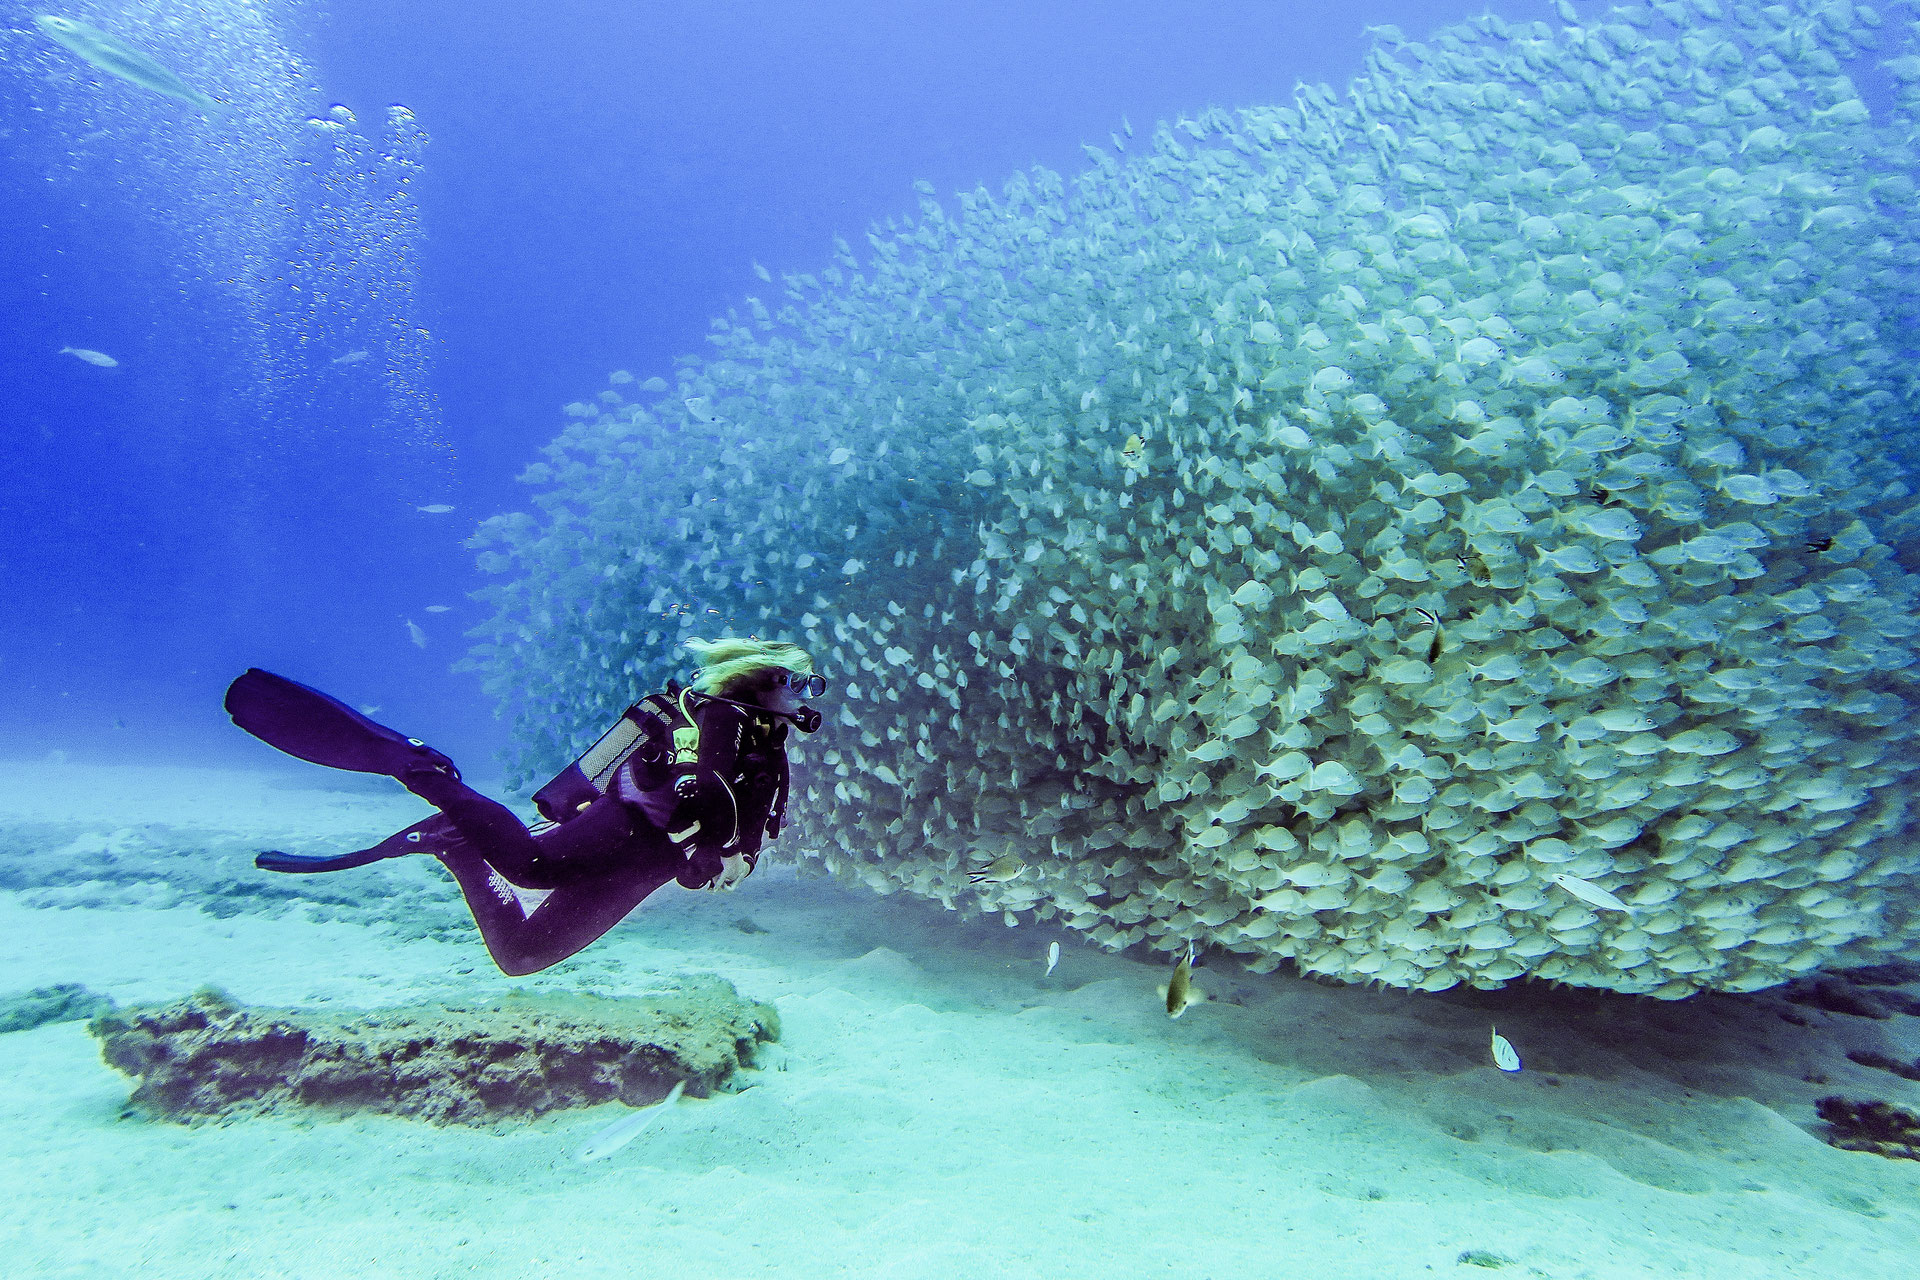 Scuba Diving in Gran Canaria - The Venice of the Canaries - Scuba Diving Website for Women